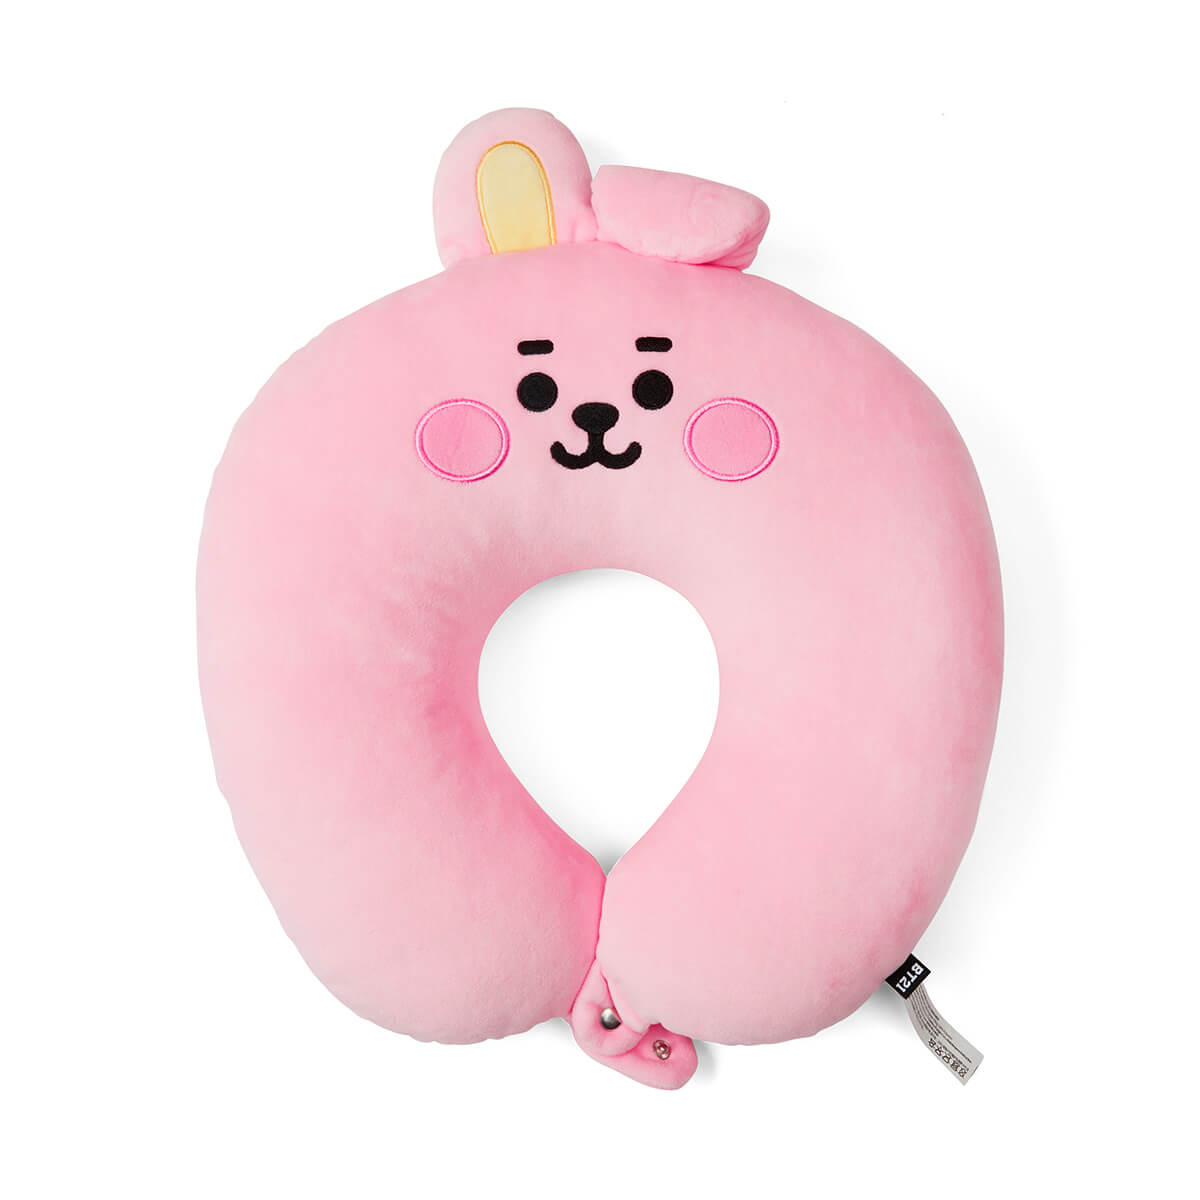 BT21 COOKY BABY Travel Neck Pillow w/ Snap Fastener